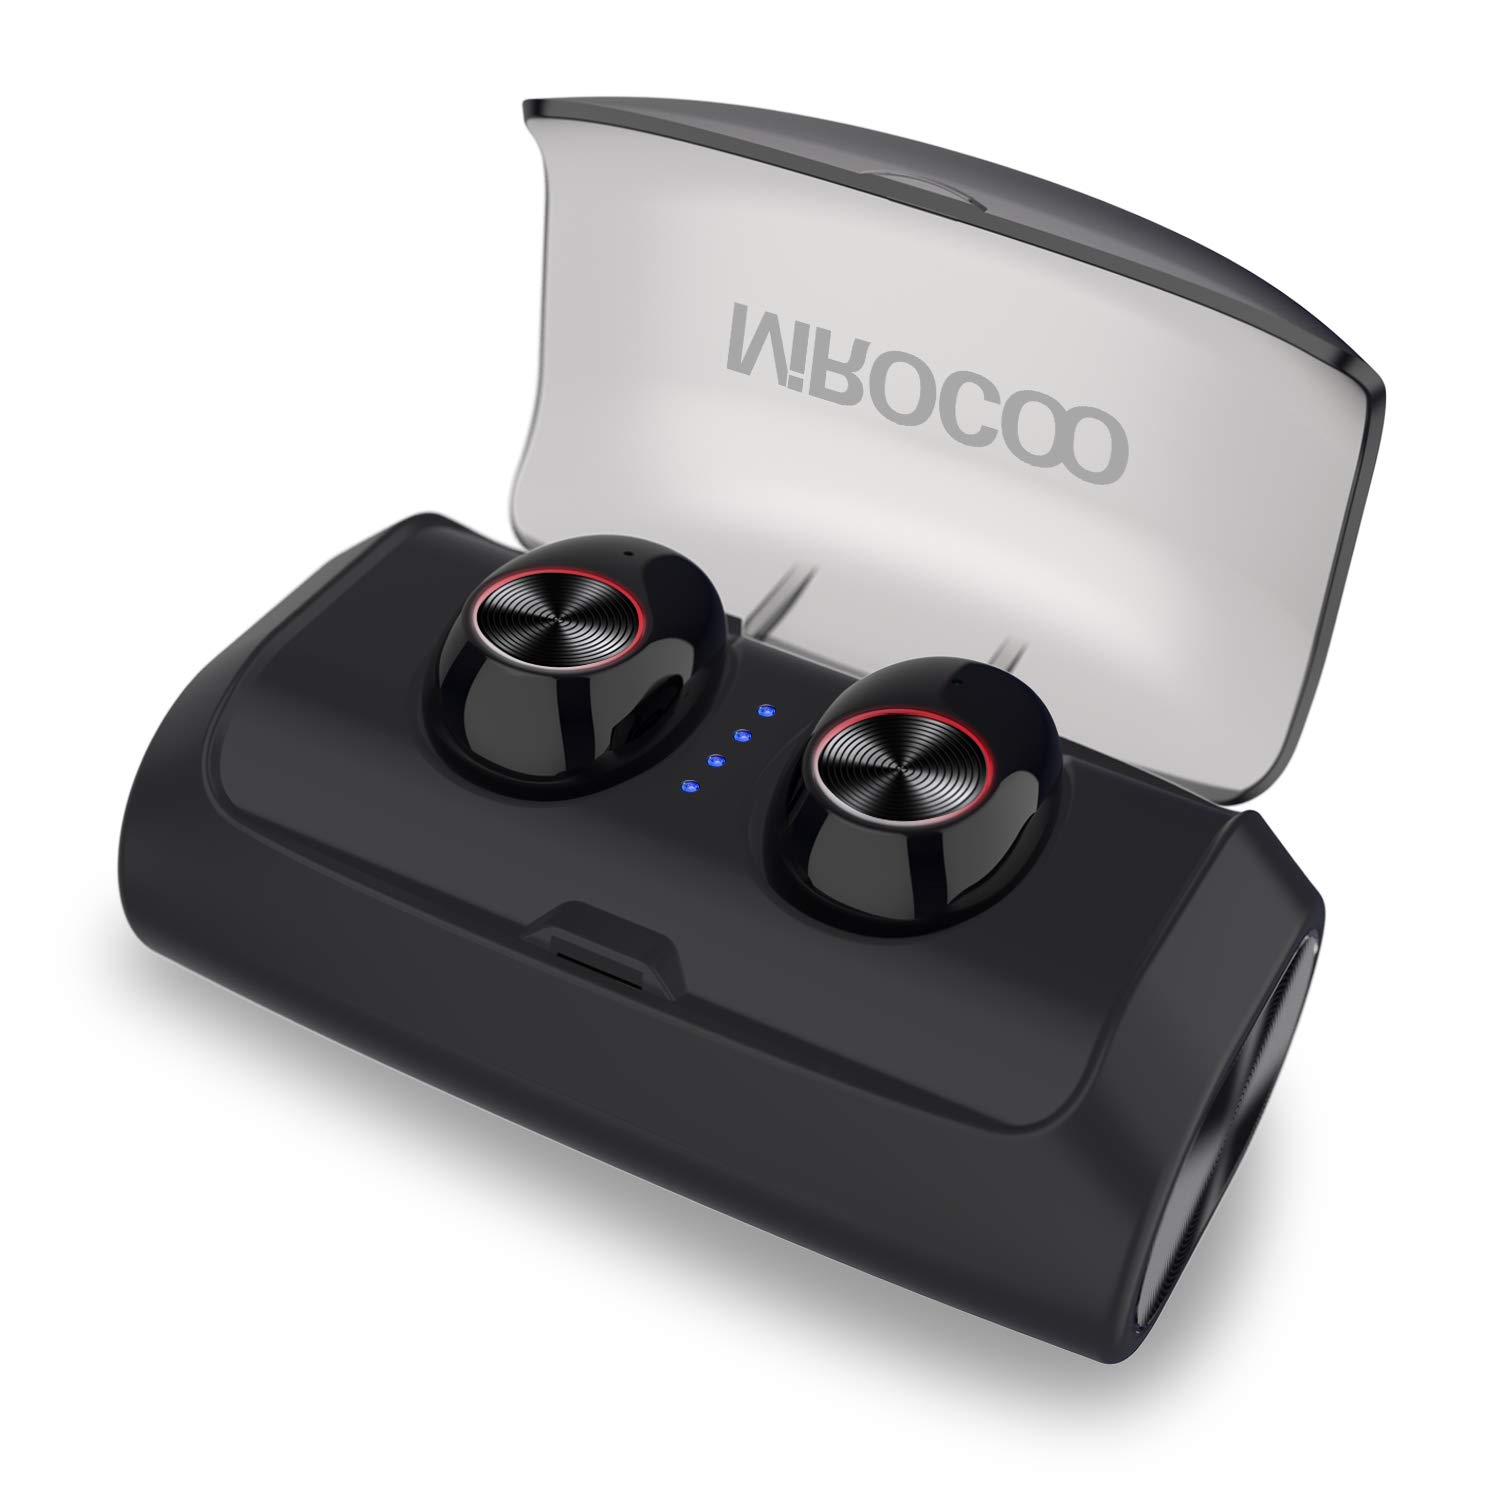 MIROCOO V6 Auriculares Bluetooth 5.0, TWS Mini In Ear Auriculares Bluetooth Inalámbricos Cascos Deportivos Auriculares